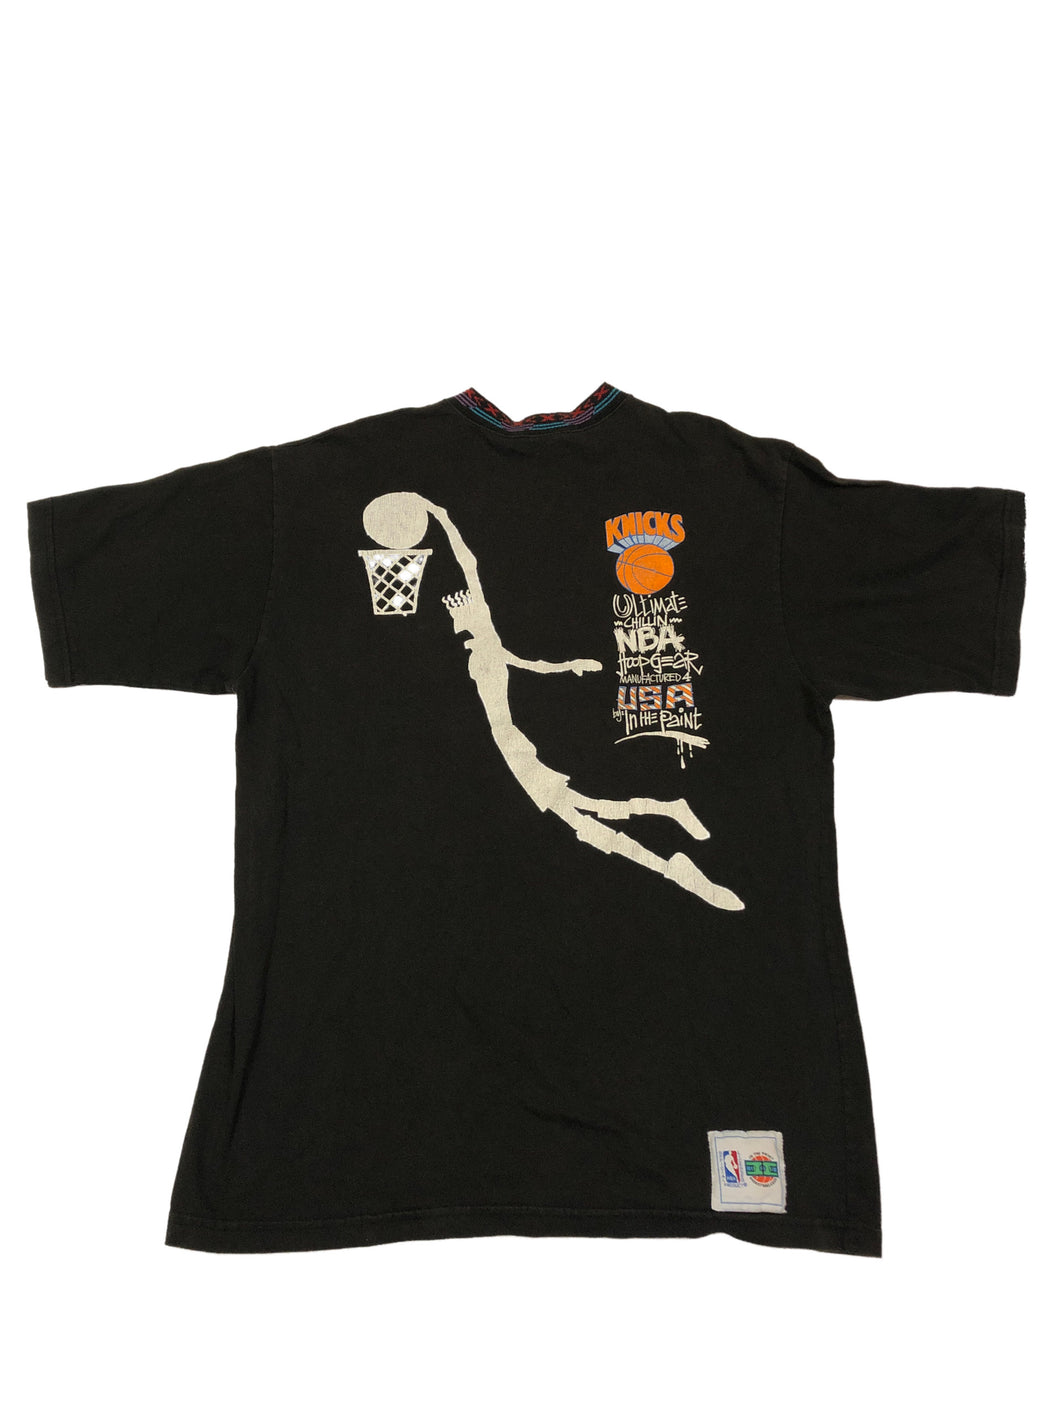 Knicks In the Paint Tee